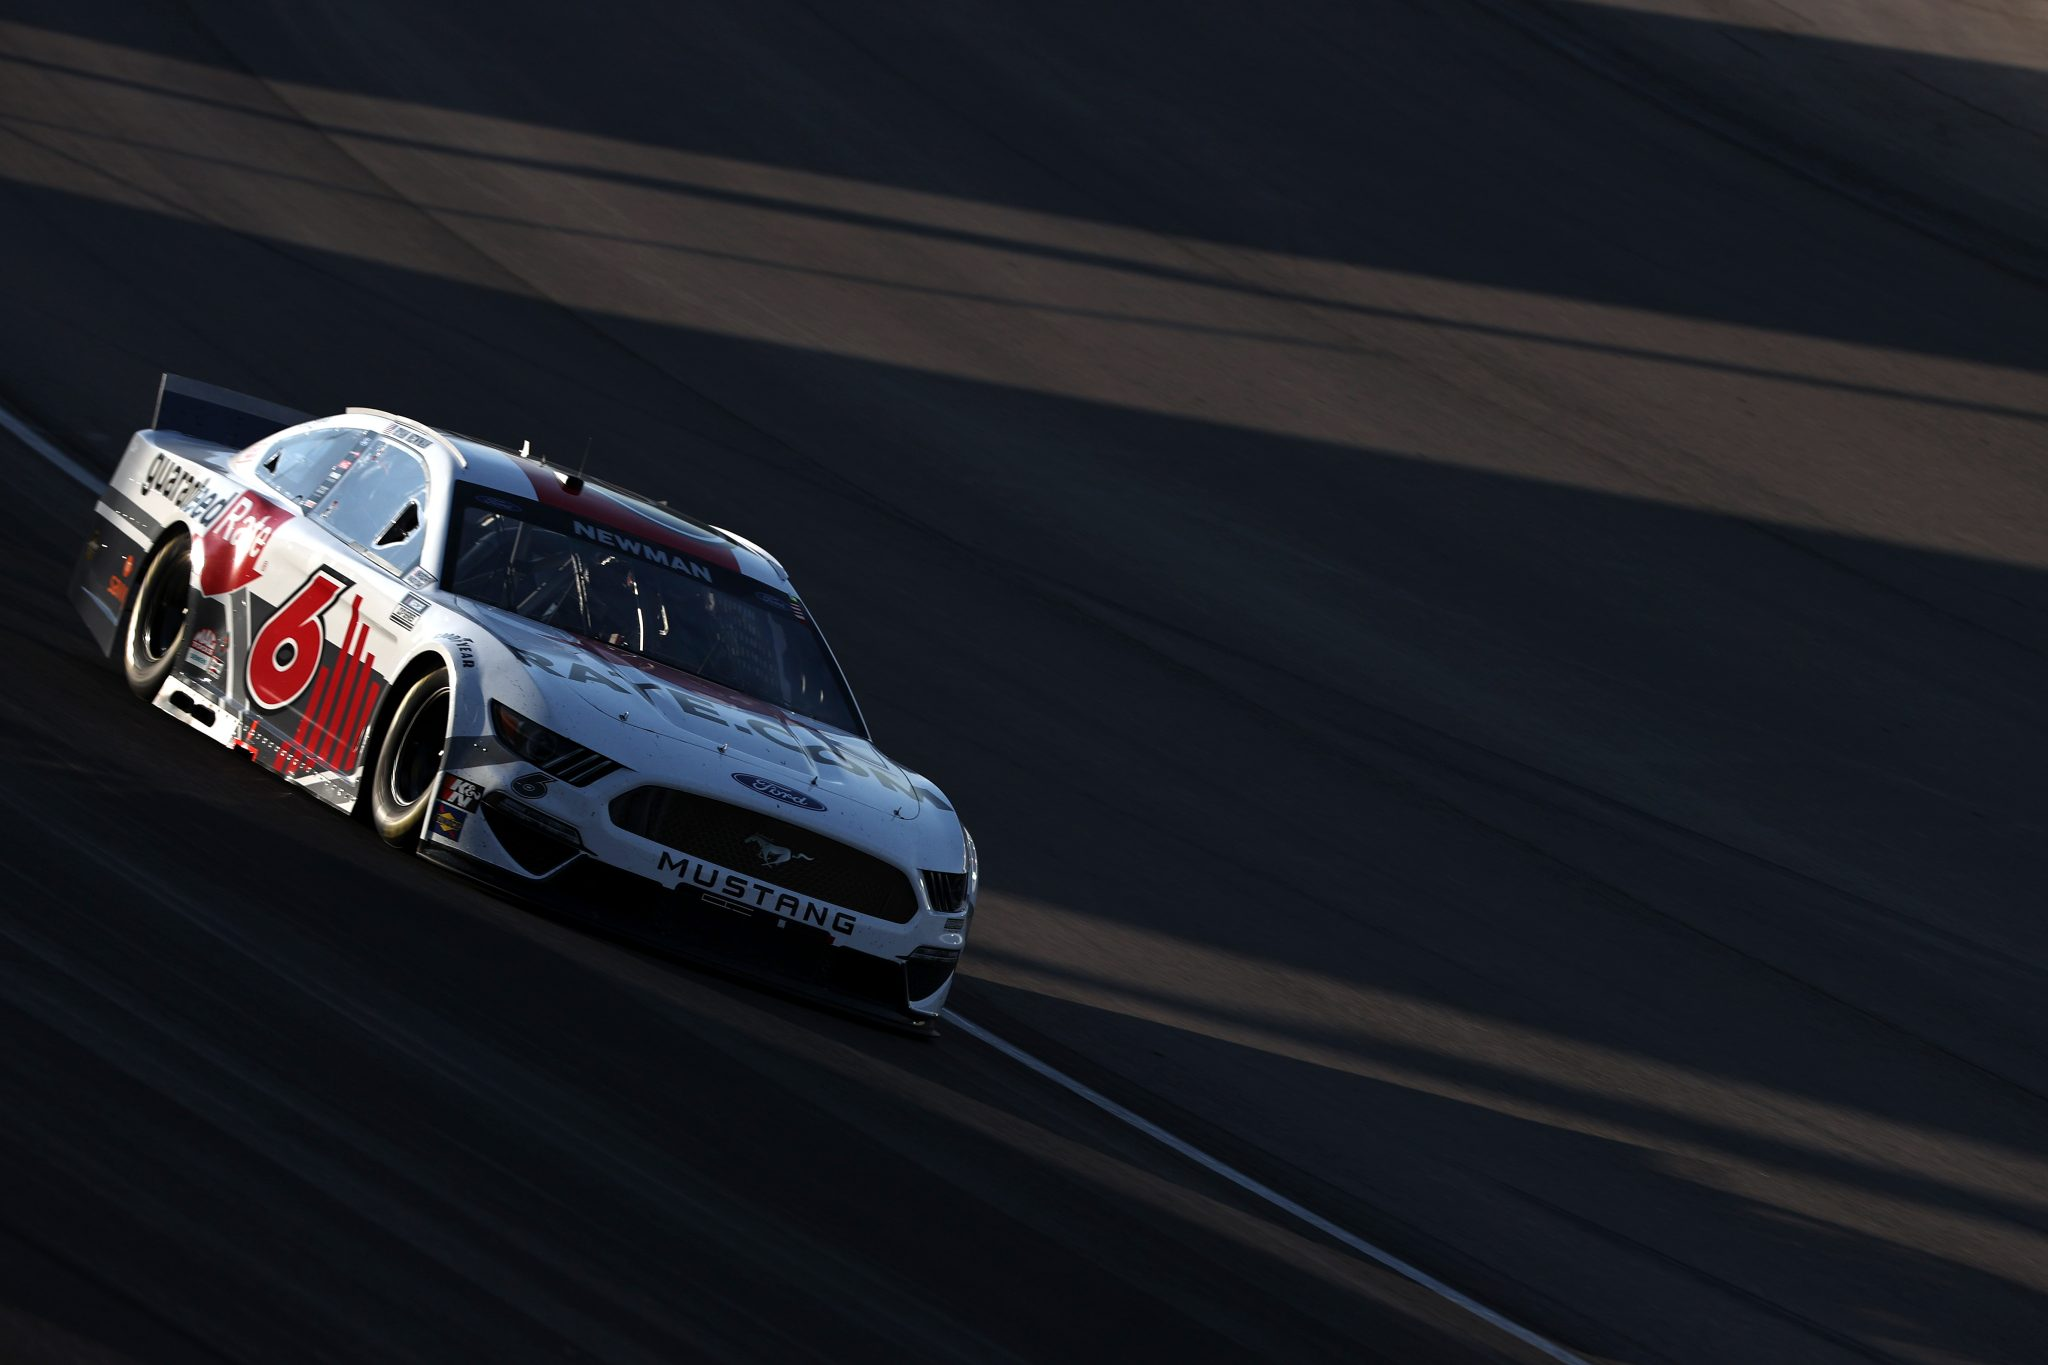 LAS VEGAS, NEVADA - SEPTEMBER 26: Ryan Newman, driver of the #6 Guaranteed Rate Ford, drives during the NASCAR Cup Series South Point 400 at Las Vegas Motor Speedway on September 26, 2021 in Las Vegas, Nevada. (Photo by Meg Oliphant/Getty Images) | Getty Images